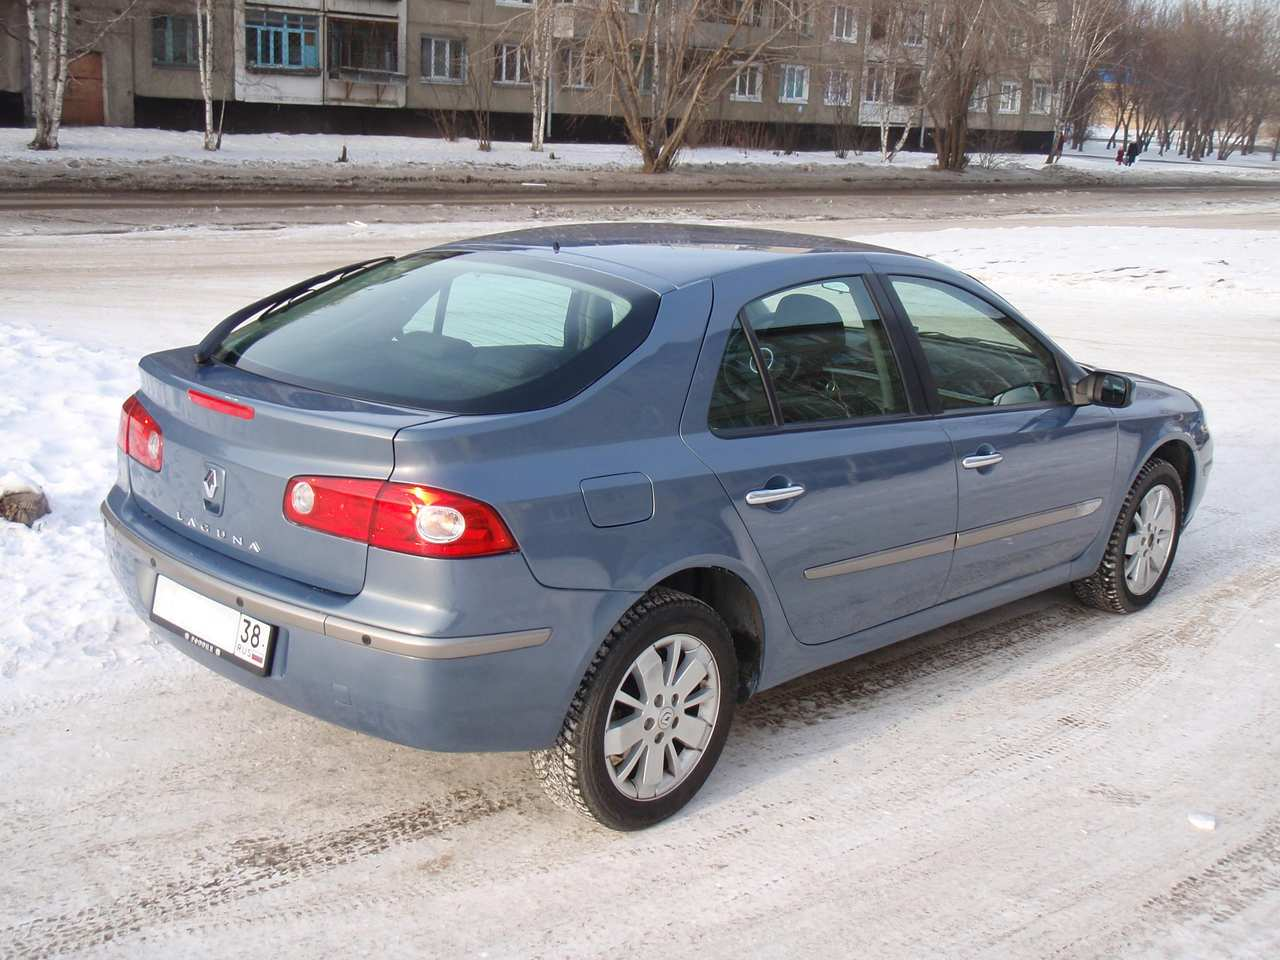 2006 renault laguna pictures 2 0l gasoline ff manual for sale rh cars directory net renault laguna 2 workshop manual renault laguna 2 workshop manual